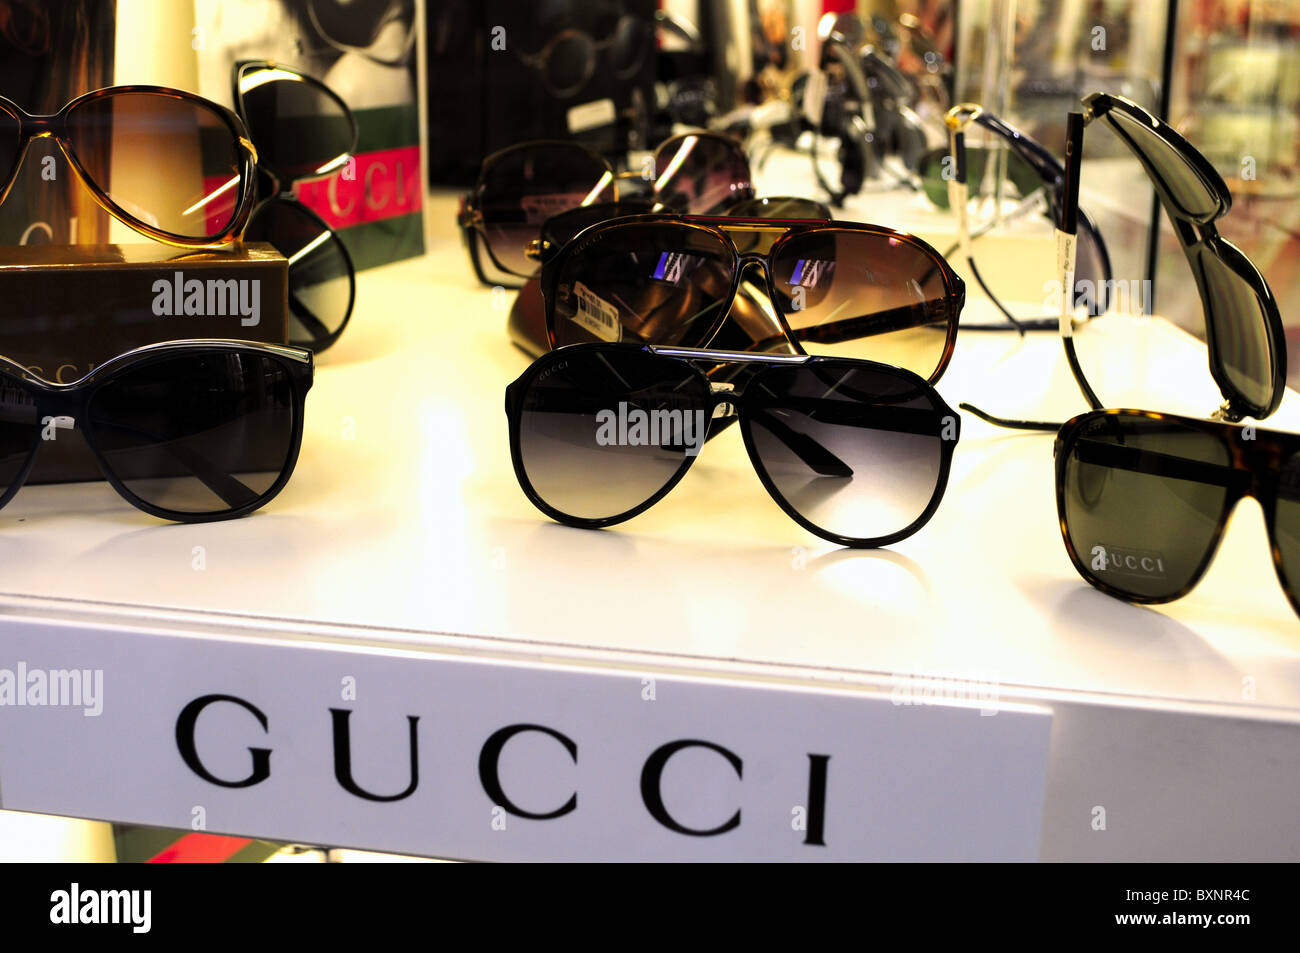 ff914566569 Gucci sunglasses in a window shop Firenze Italy Stock Photo ...